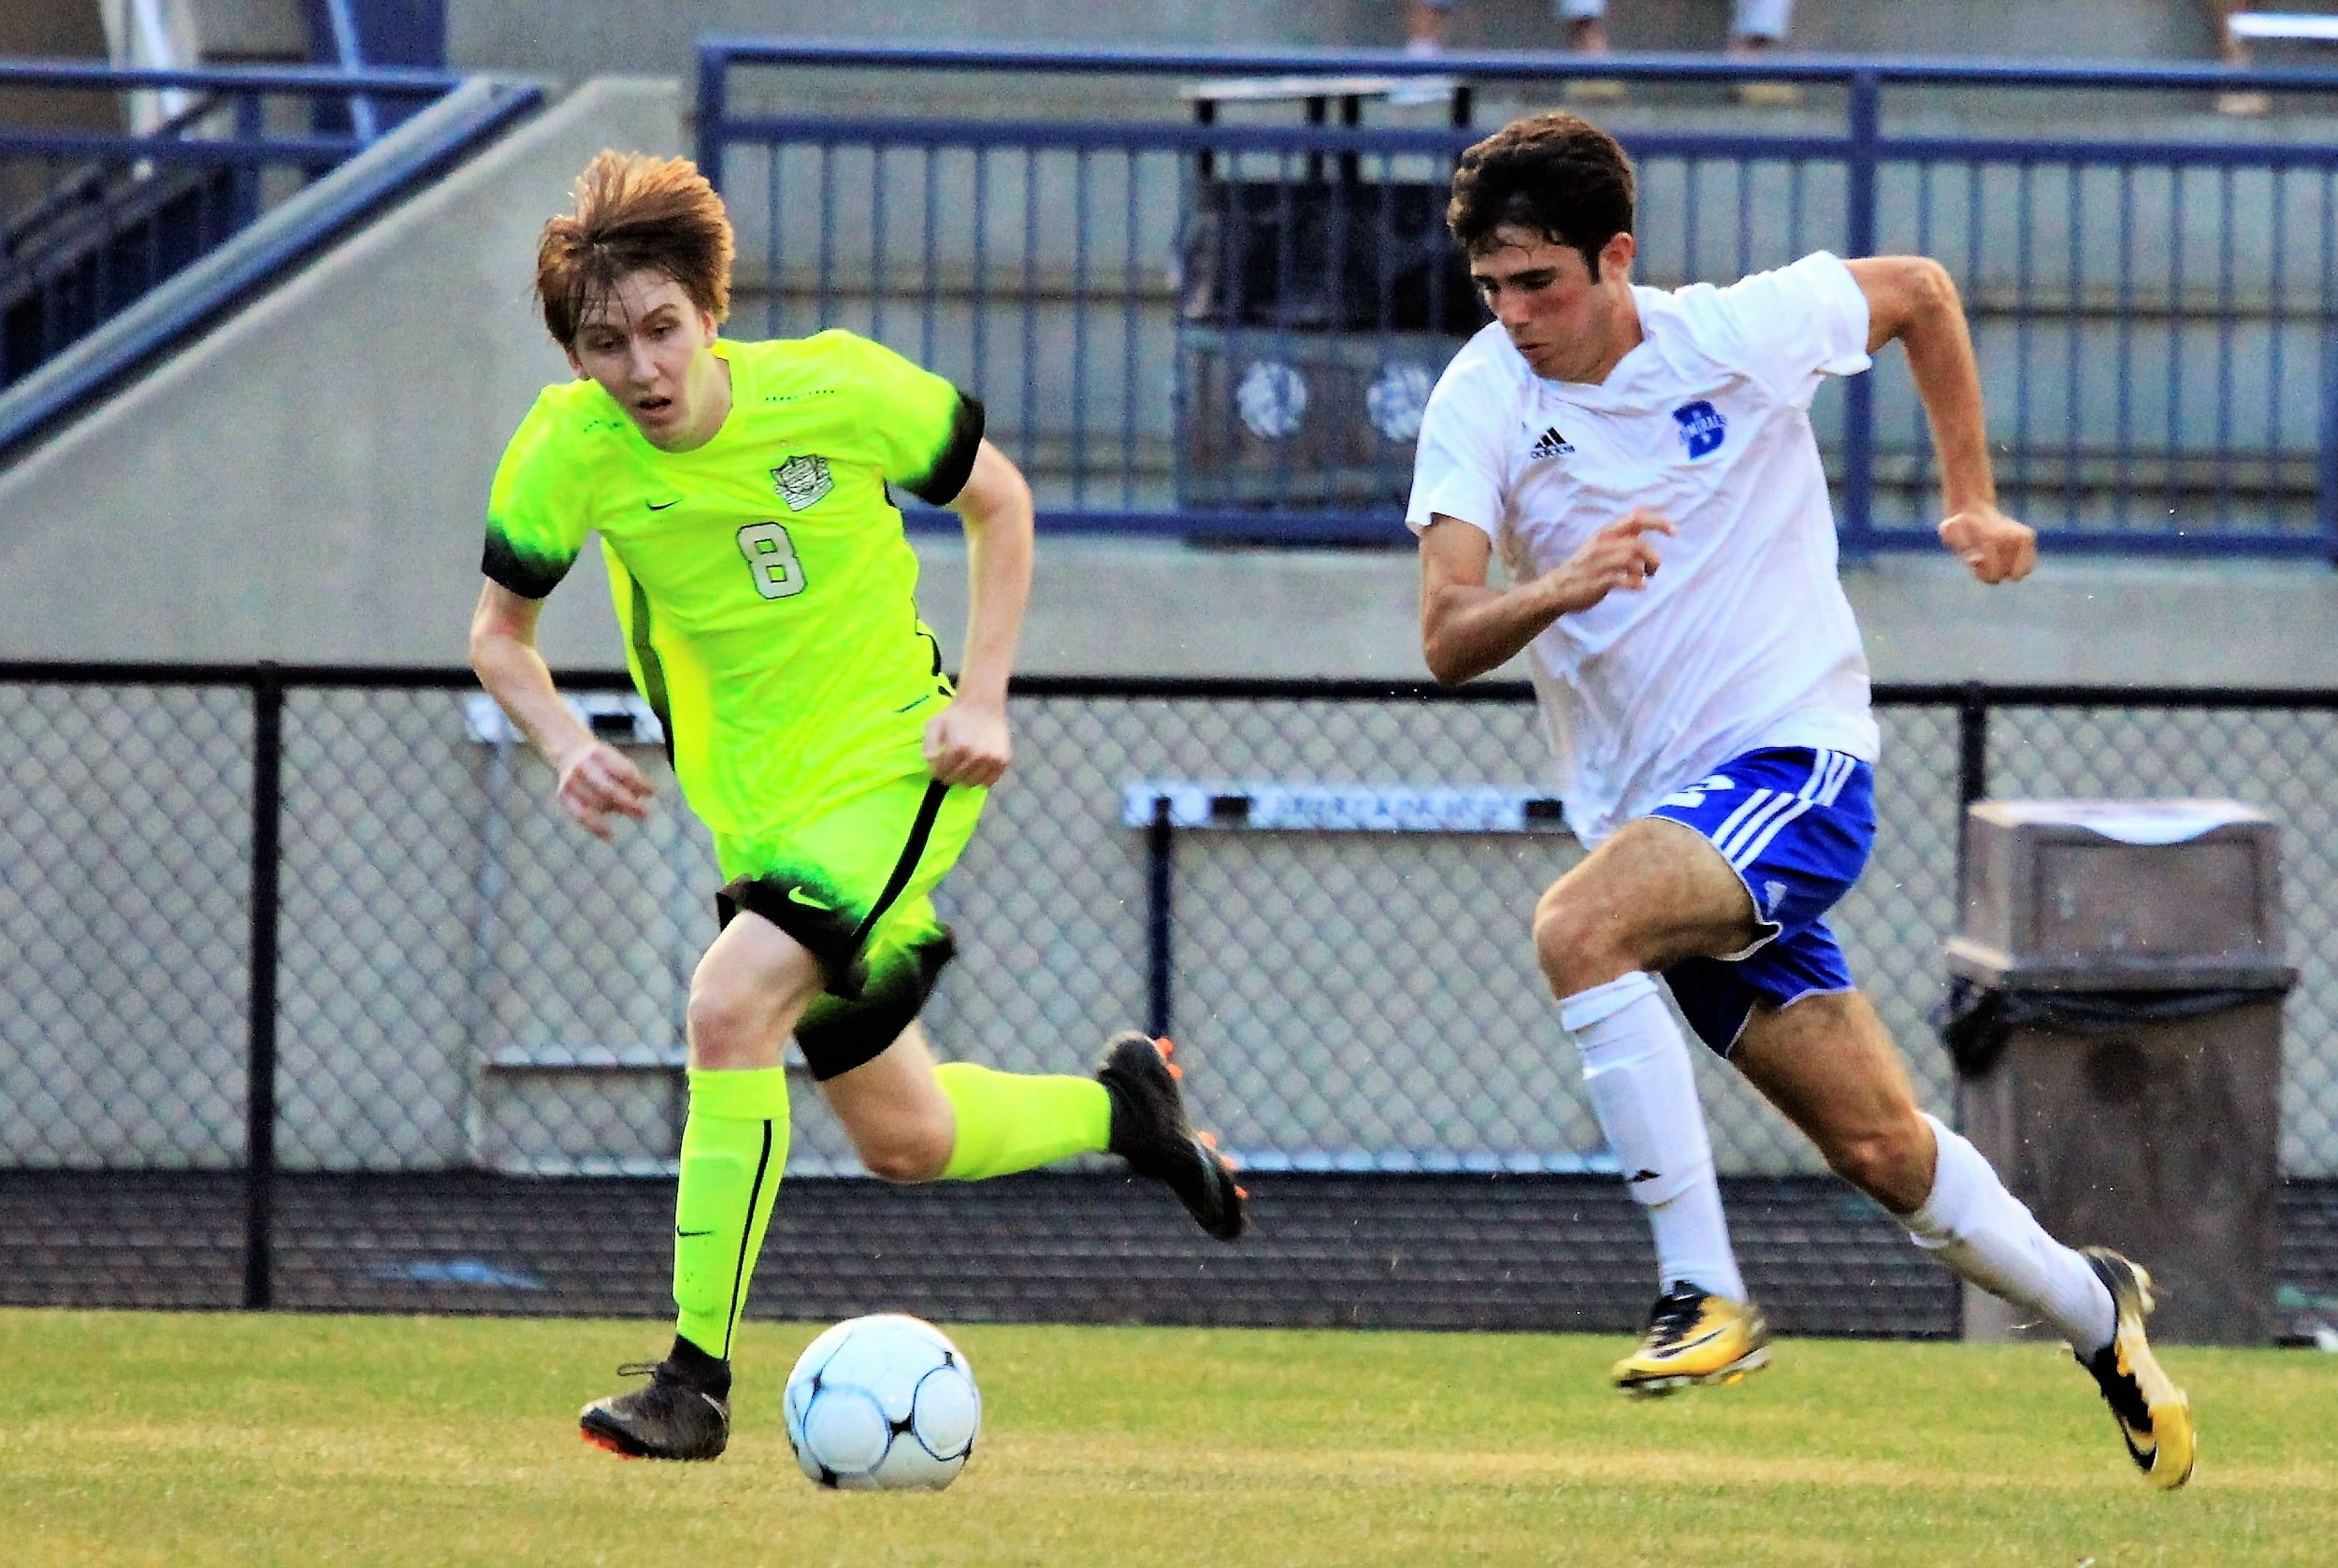 Robert Sullivan advances the ball for Bayside in the quarterfinals against Indian Springs.